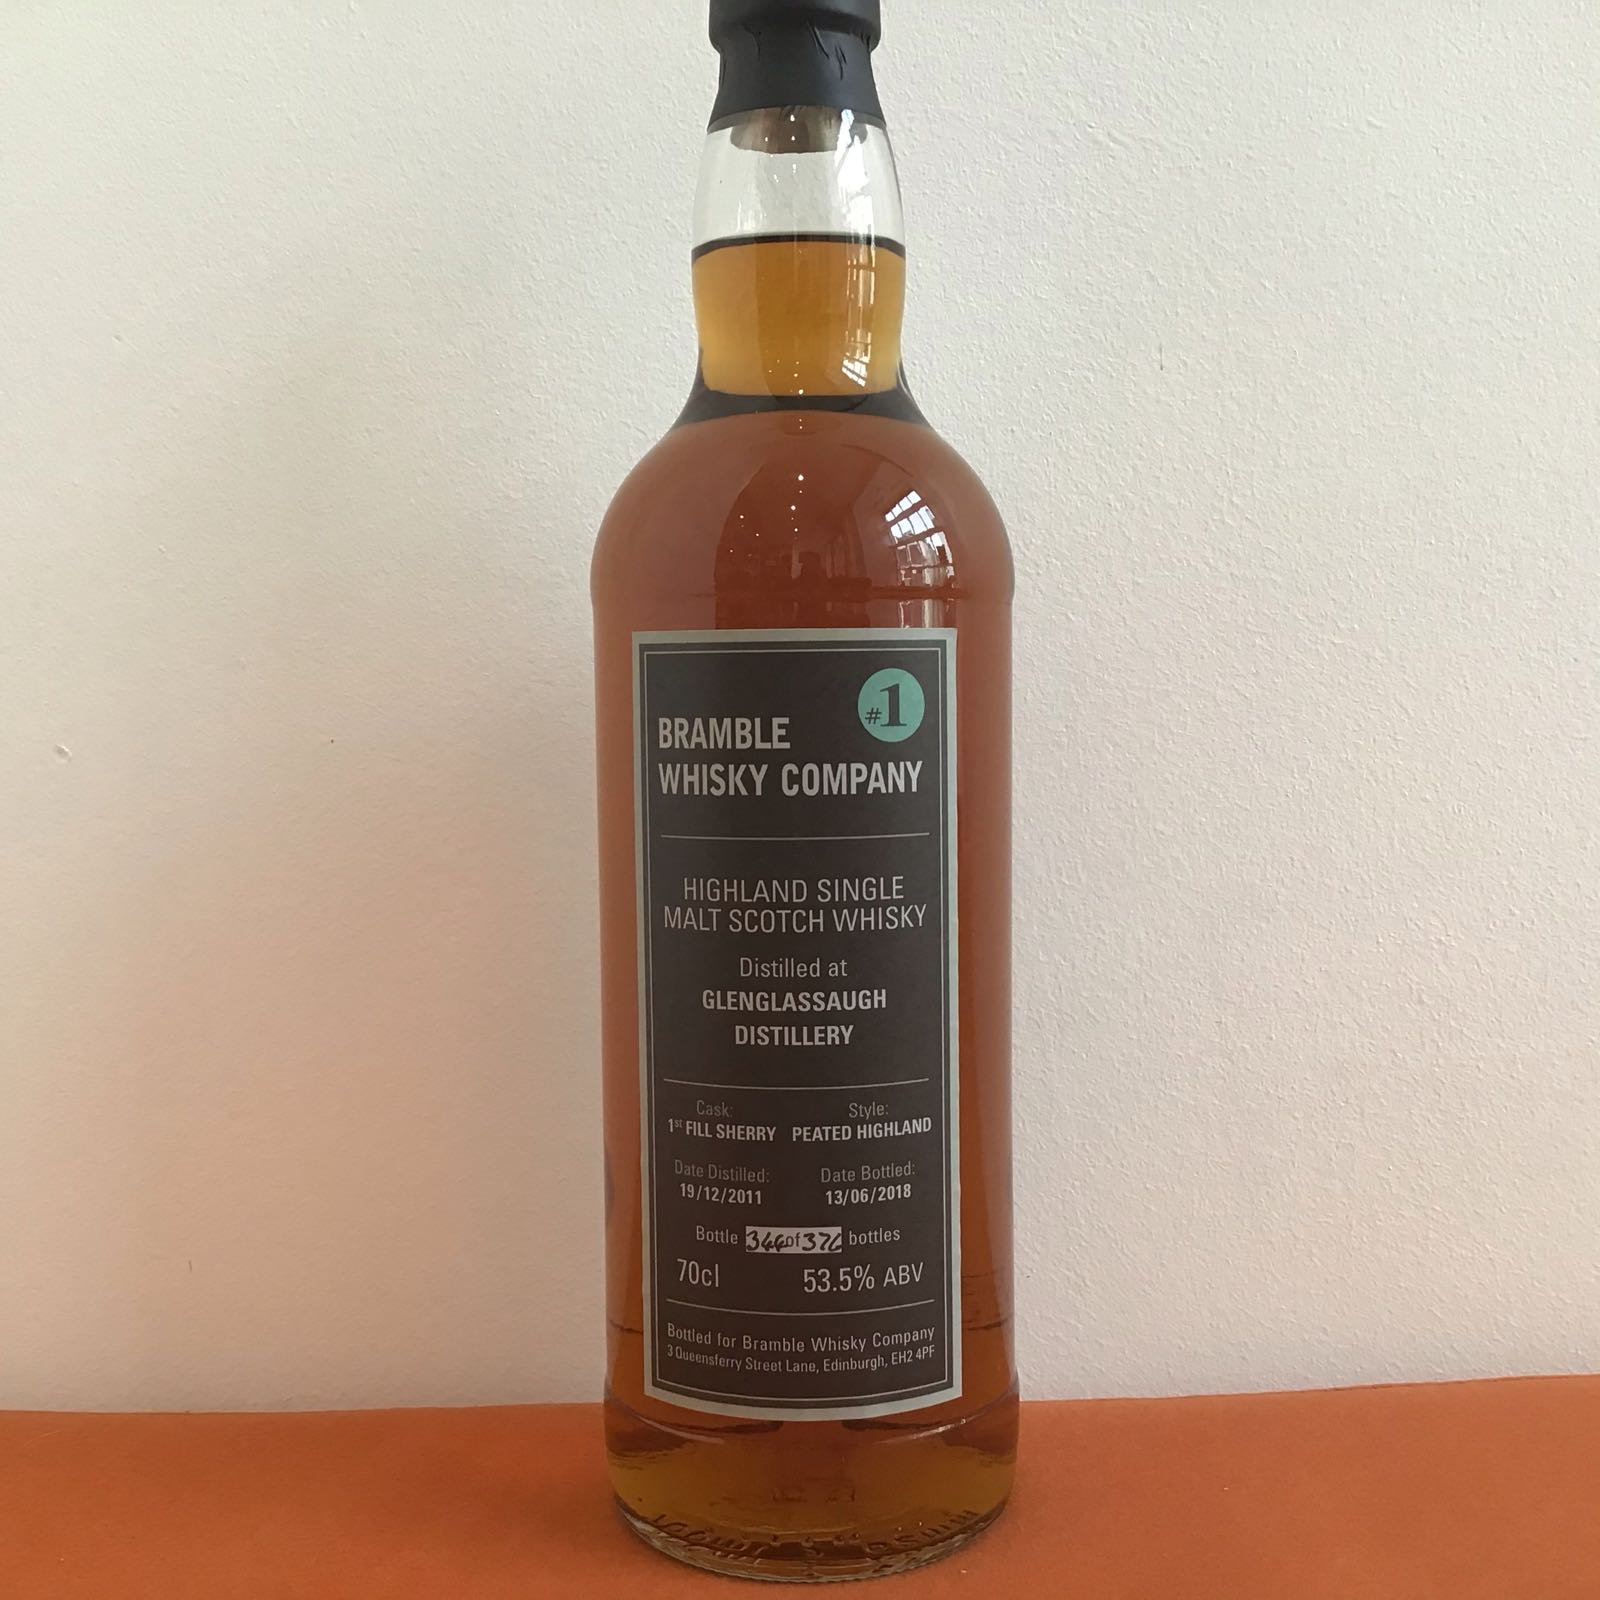 Bramble Whisky Company: #1 Single Cask Glenglassaugh